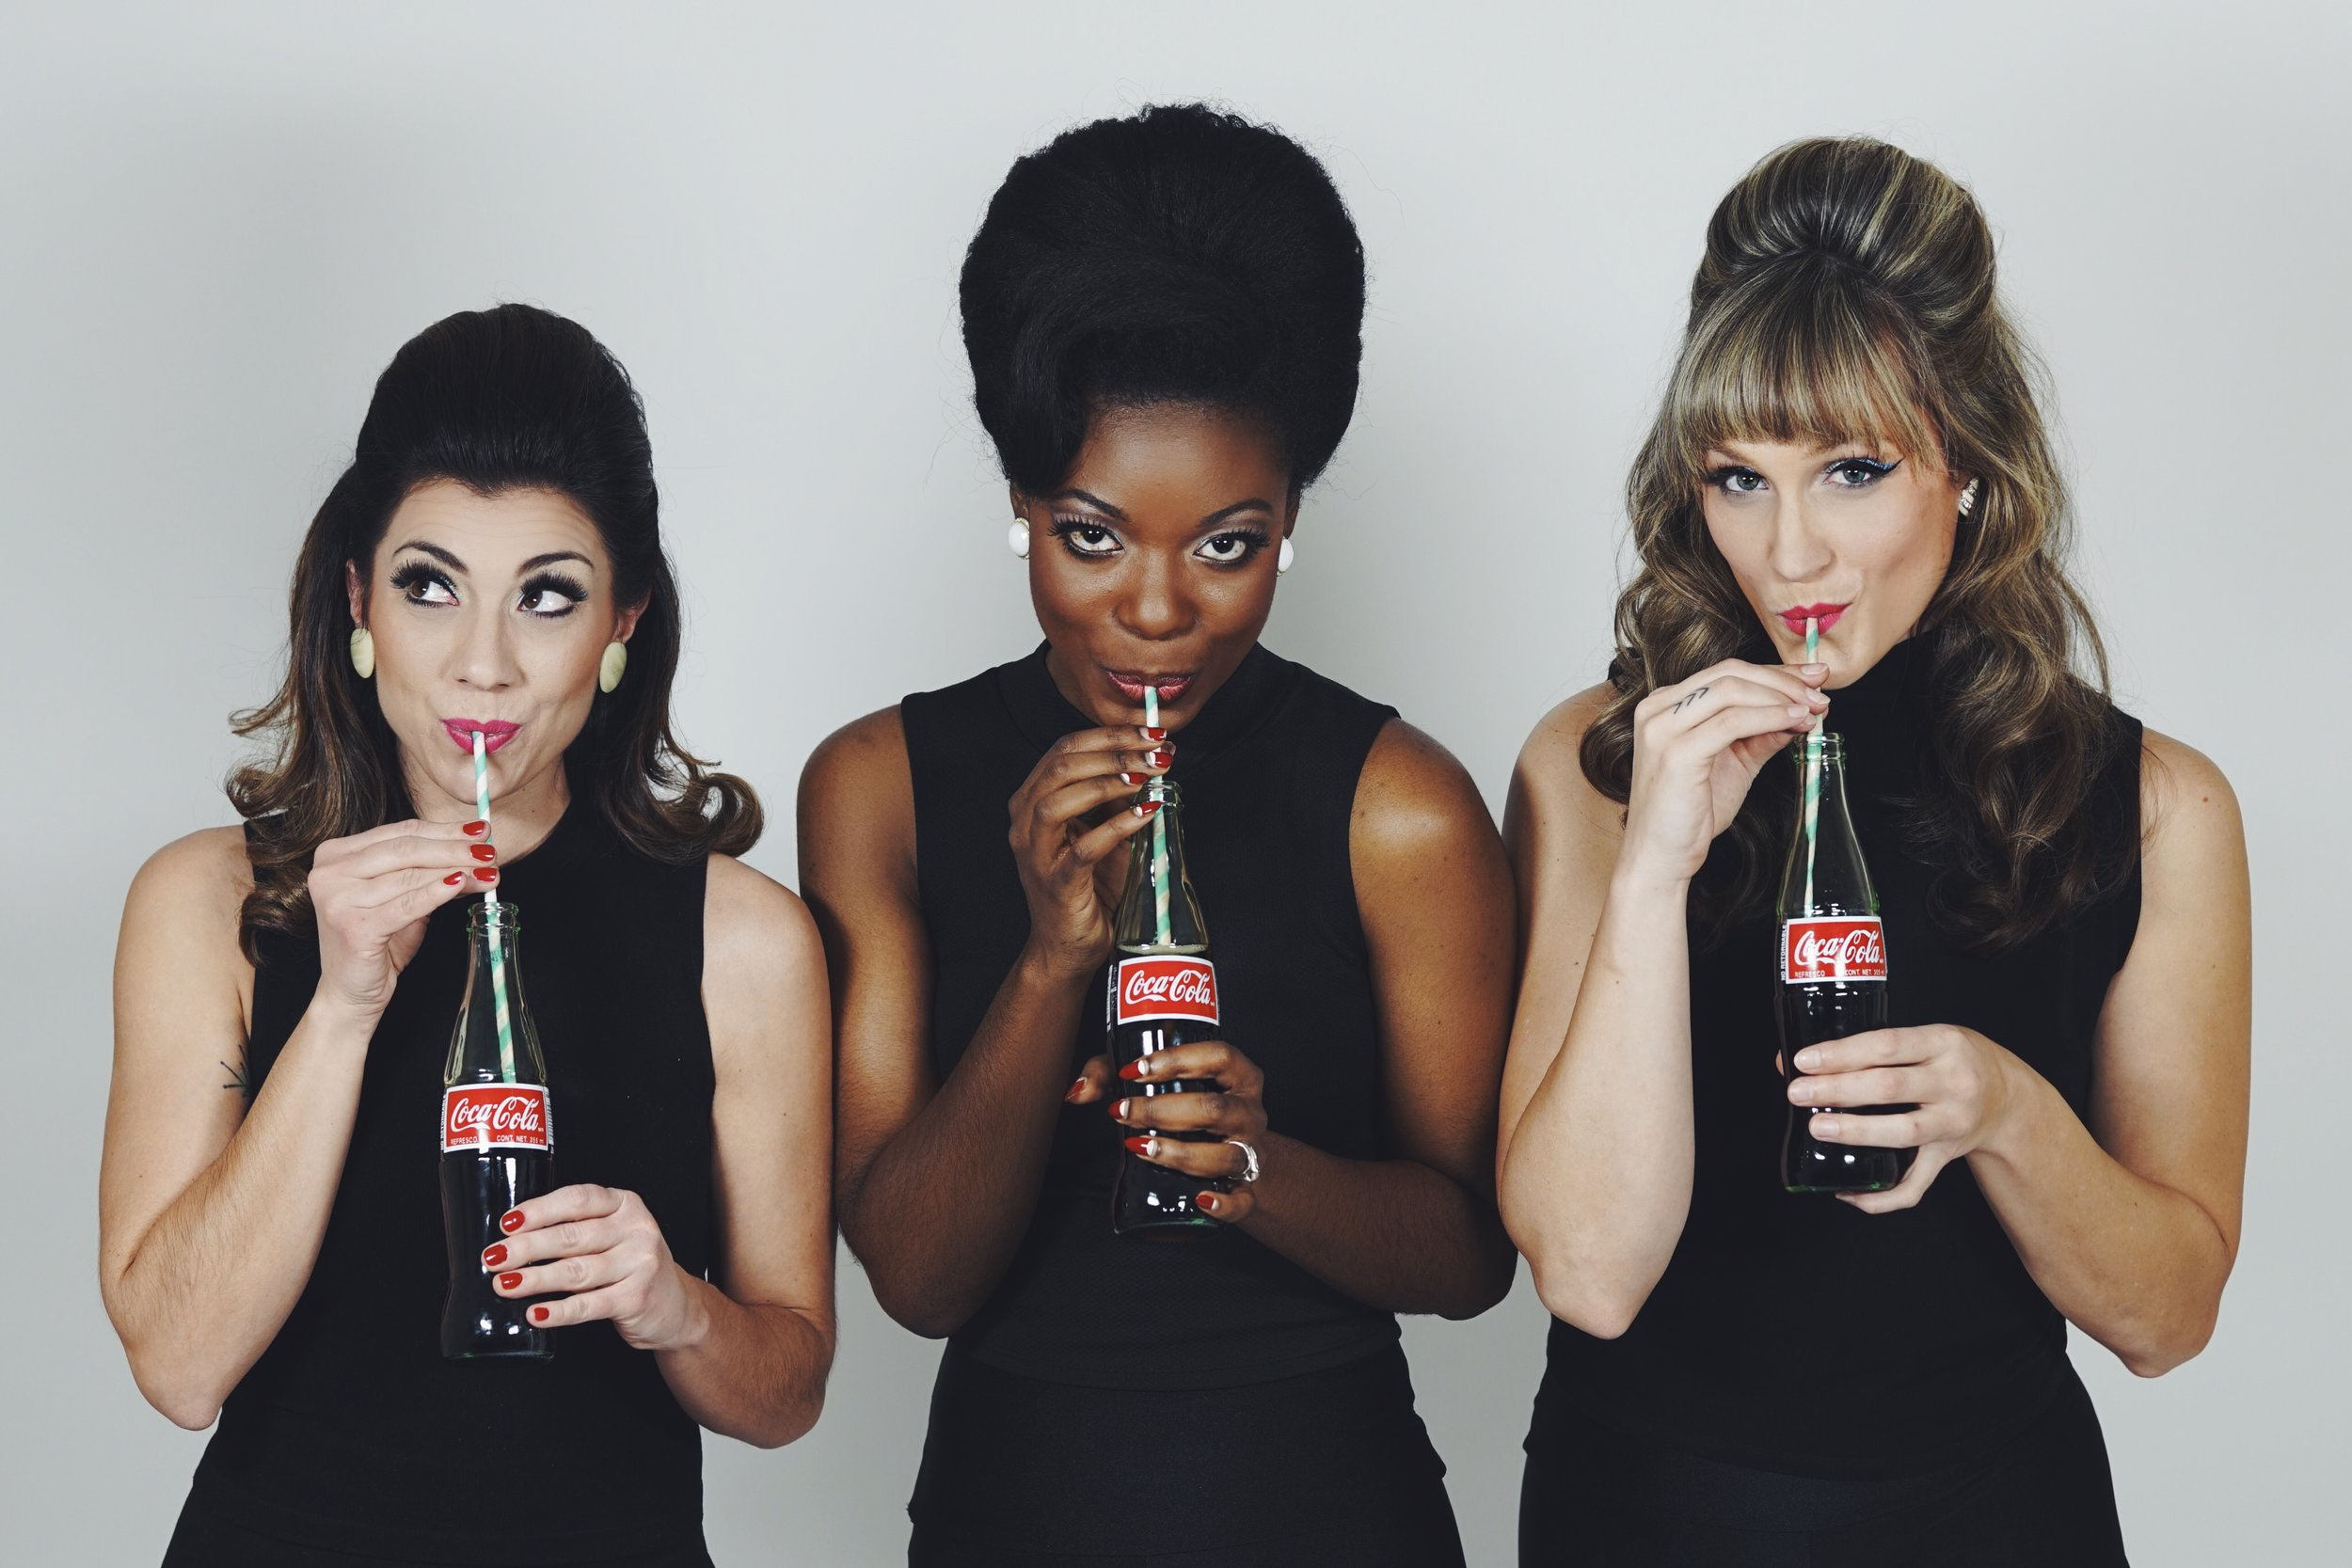 The Lovettes go better with Coke